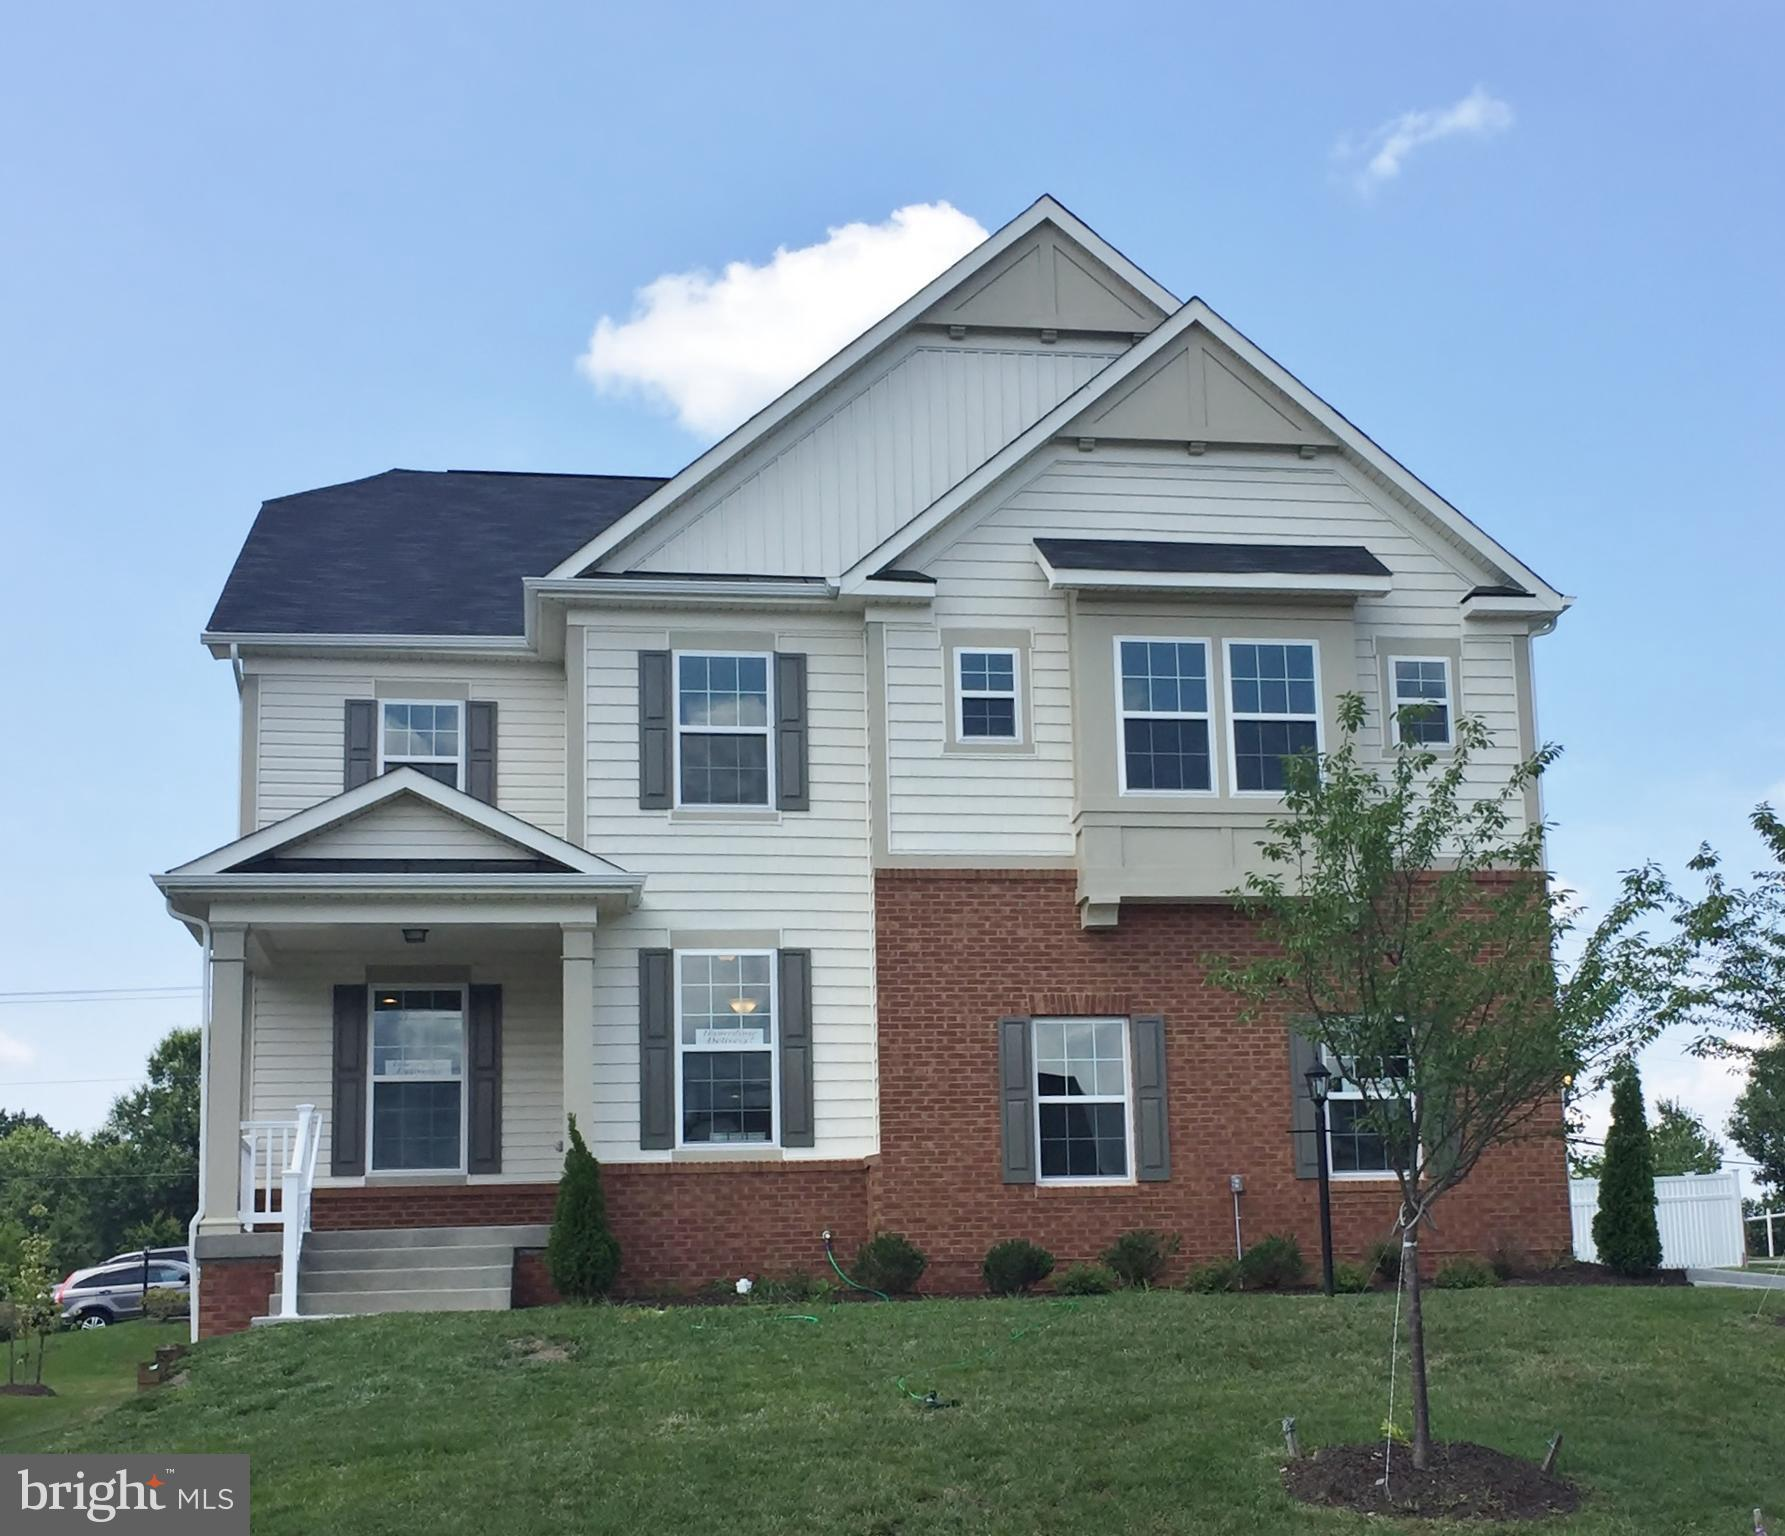 IMMEDIATE DELIVERY - NEW CONSTRUCTION: MASON, 5 BR, 4.5 BA: 2 Car Side Load Garage, Craftsman Style Oak Stairs, Upgraded GE Appliance Pkg, Family Rm has Stacked Stone Gas Fireplace w/Raised Hearth, Luxury Master Bath, Large Bedrooms, Areaway in Bsmt, Finished Bsmt Rec Rm w/Wet Bar Rough-in, Bedrm, &Full BA, 12x18 Concrete Patio, Close to Shopping, MUST SEE!